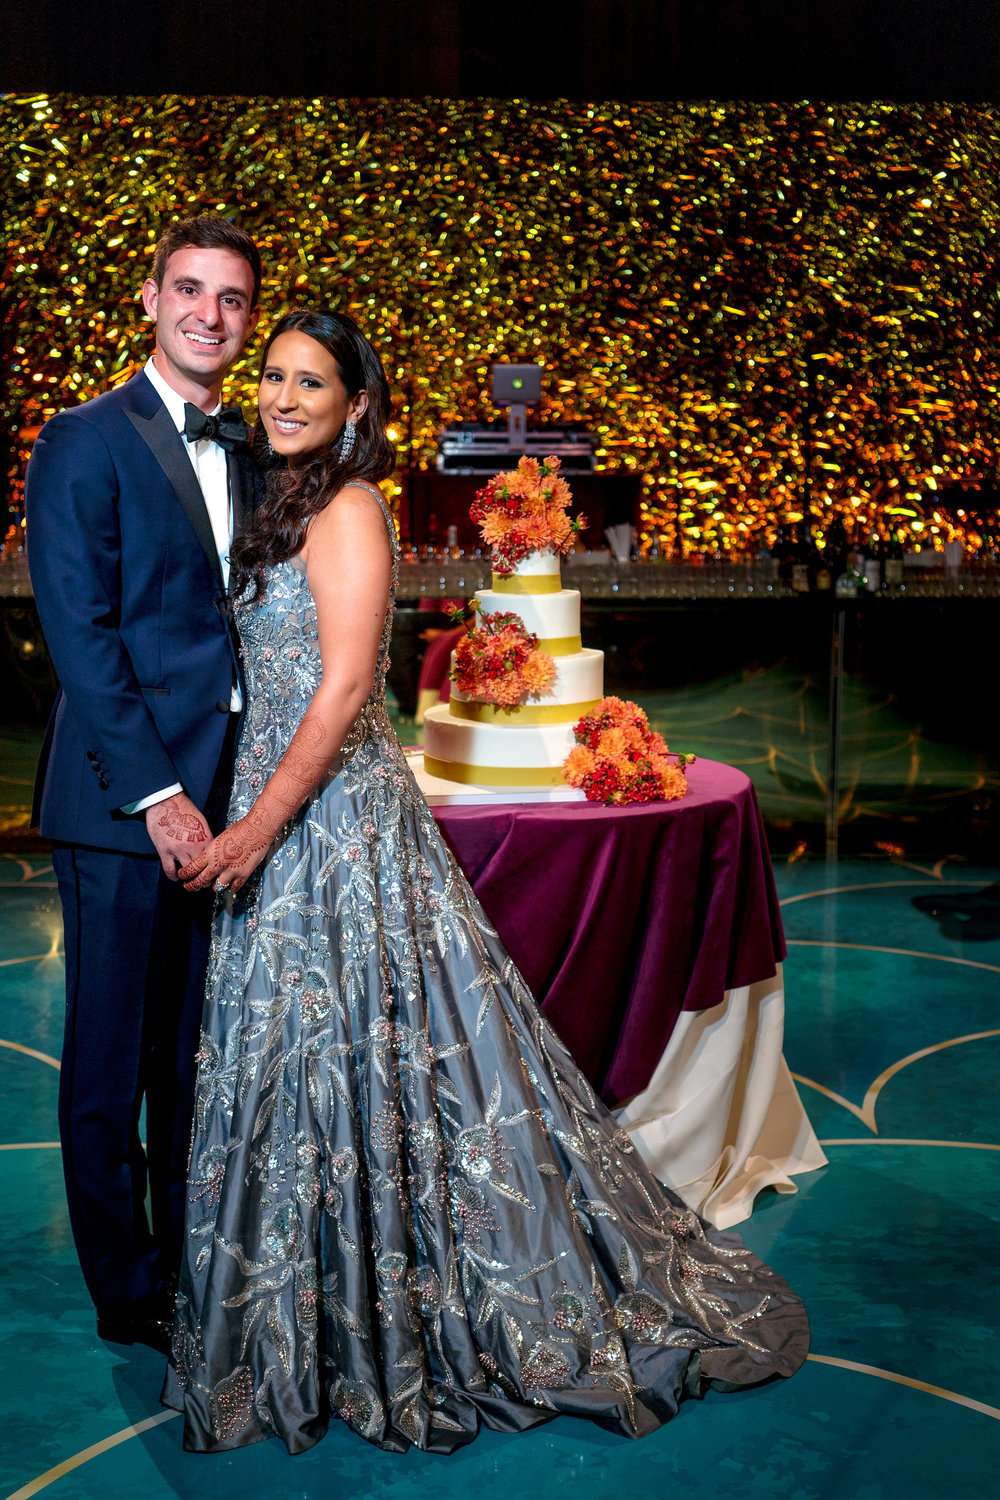 INDIAN WEDDING BRIDE AND GROOM CAKE SHOT2.JPG